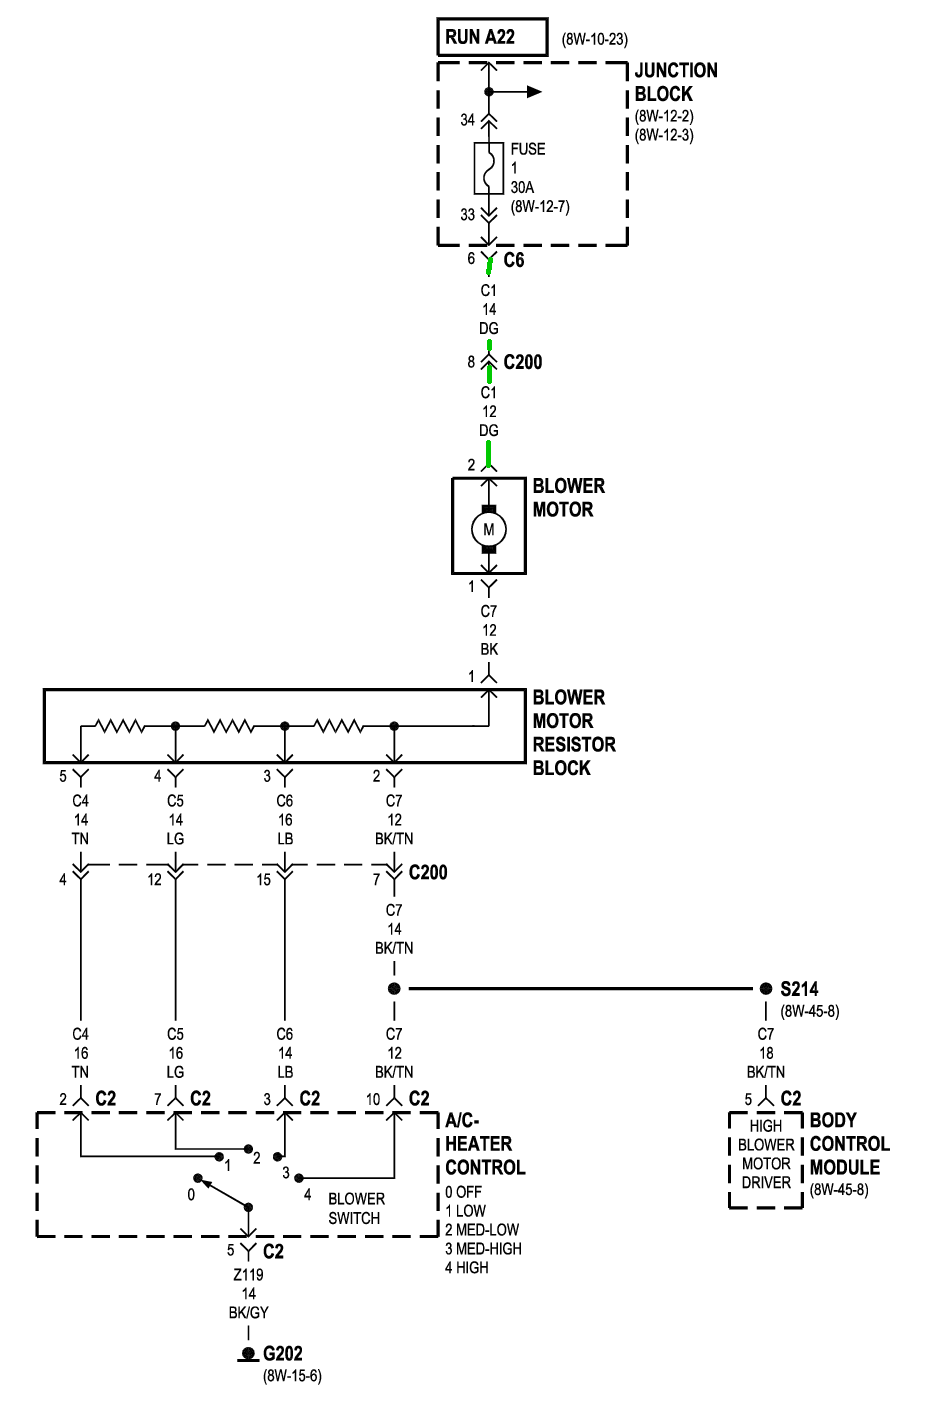 ... 2005 chrysler sebring fuse box diagram lmFtQhg?resize=665%2C1013 2004  chrysler town